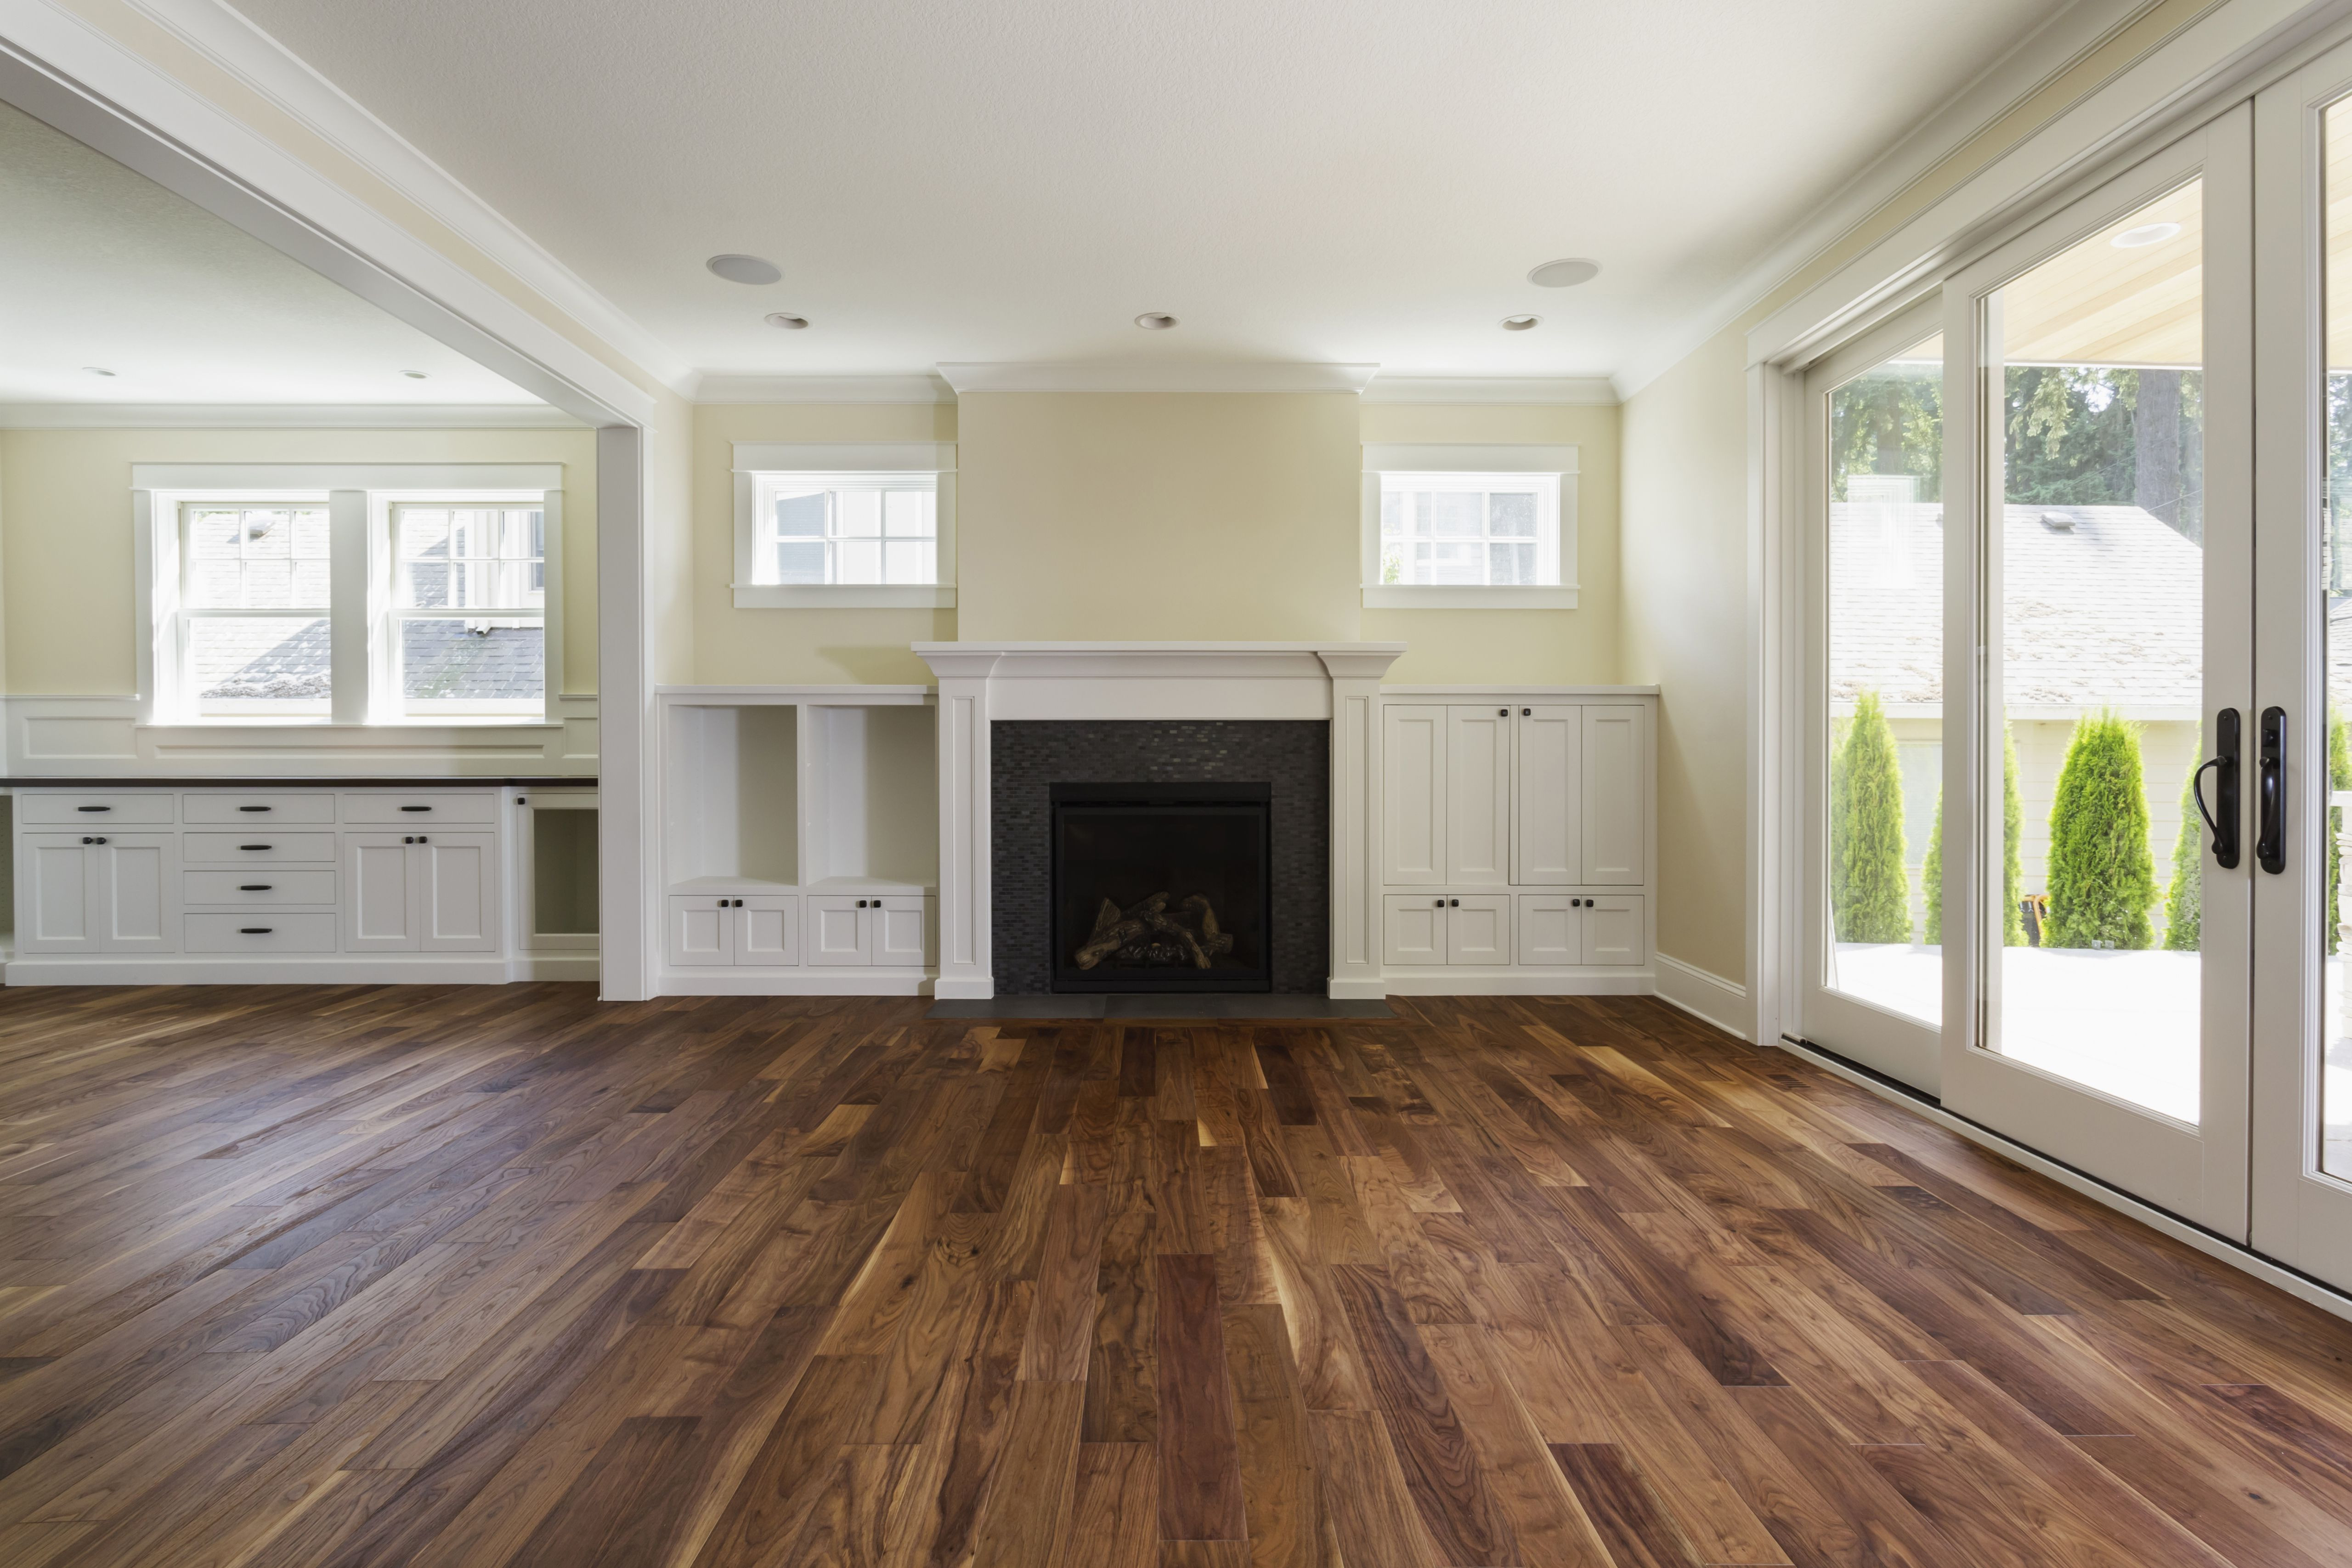 hardwood floor refinishing polyurethane of the pros and cons of prefinished hardwood flooring inside fireplace and built in shelves in living room 482143011 57bef8e33df78cc16e035397